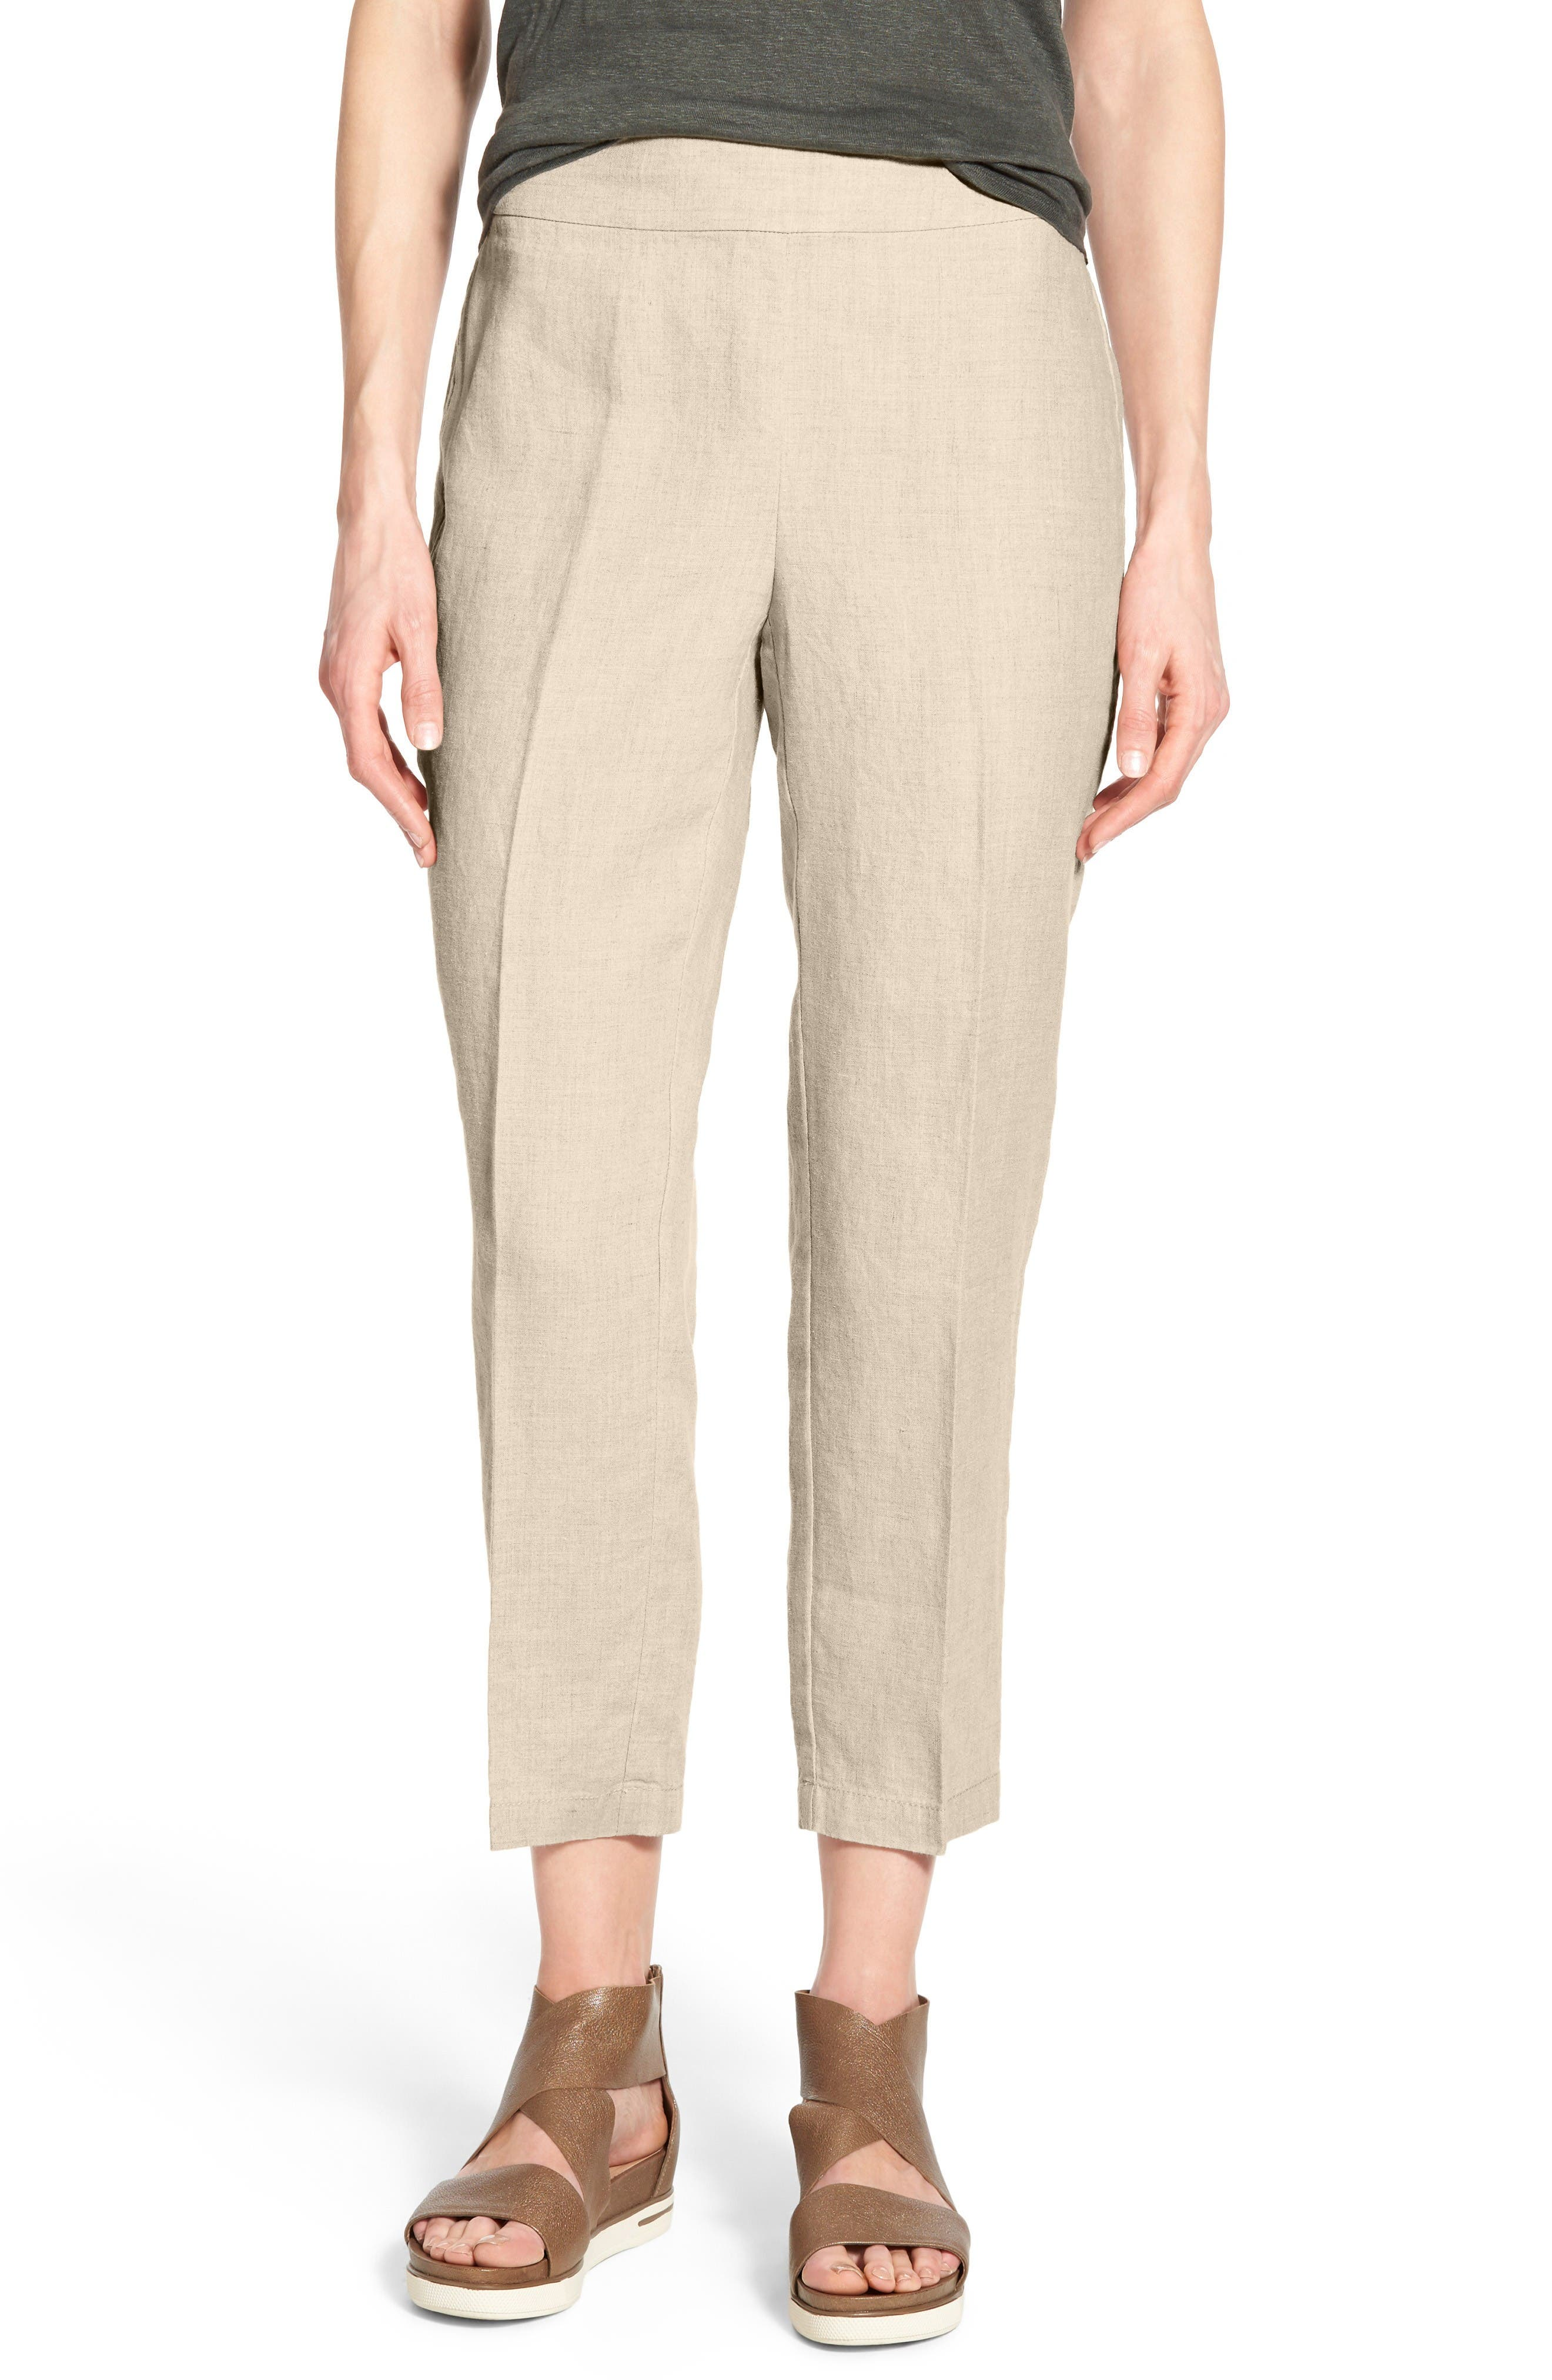 Main Image - Eileen Fisher Organic Linen Crop Pants (Regular & Petite) (Nordstrom Exclusive)